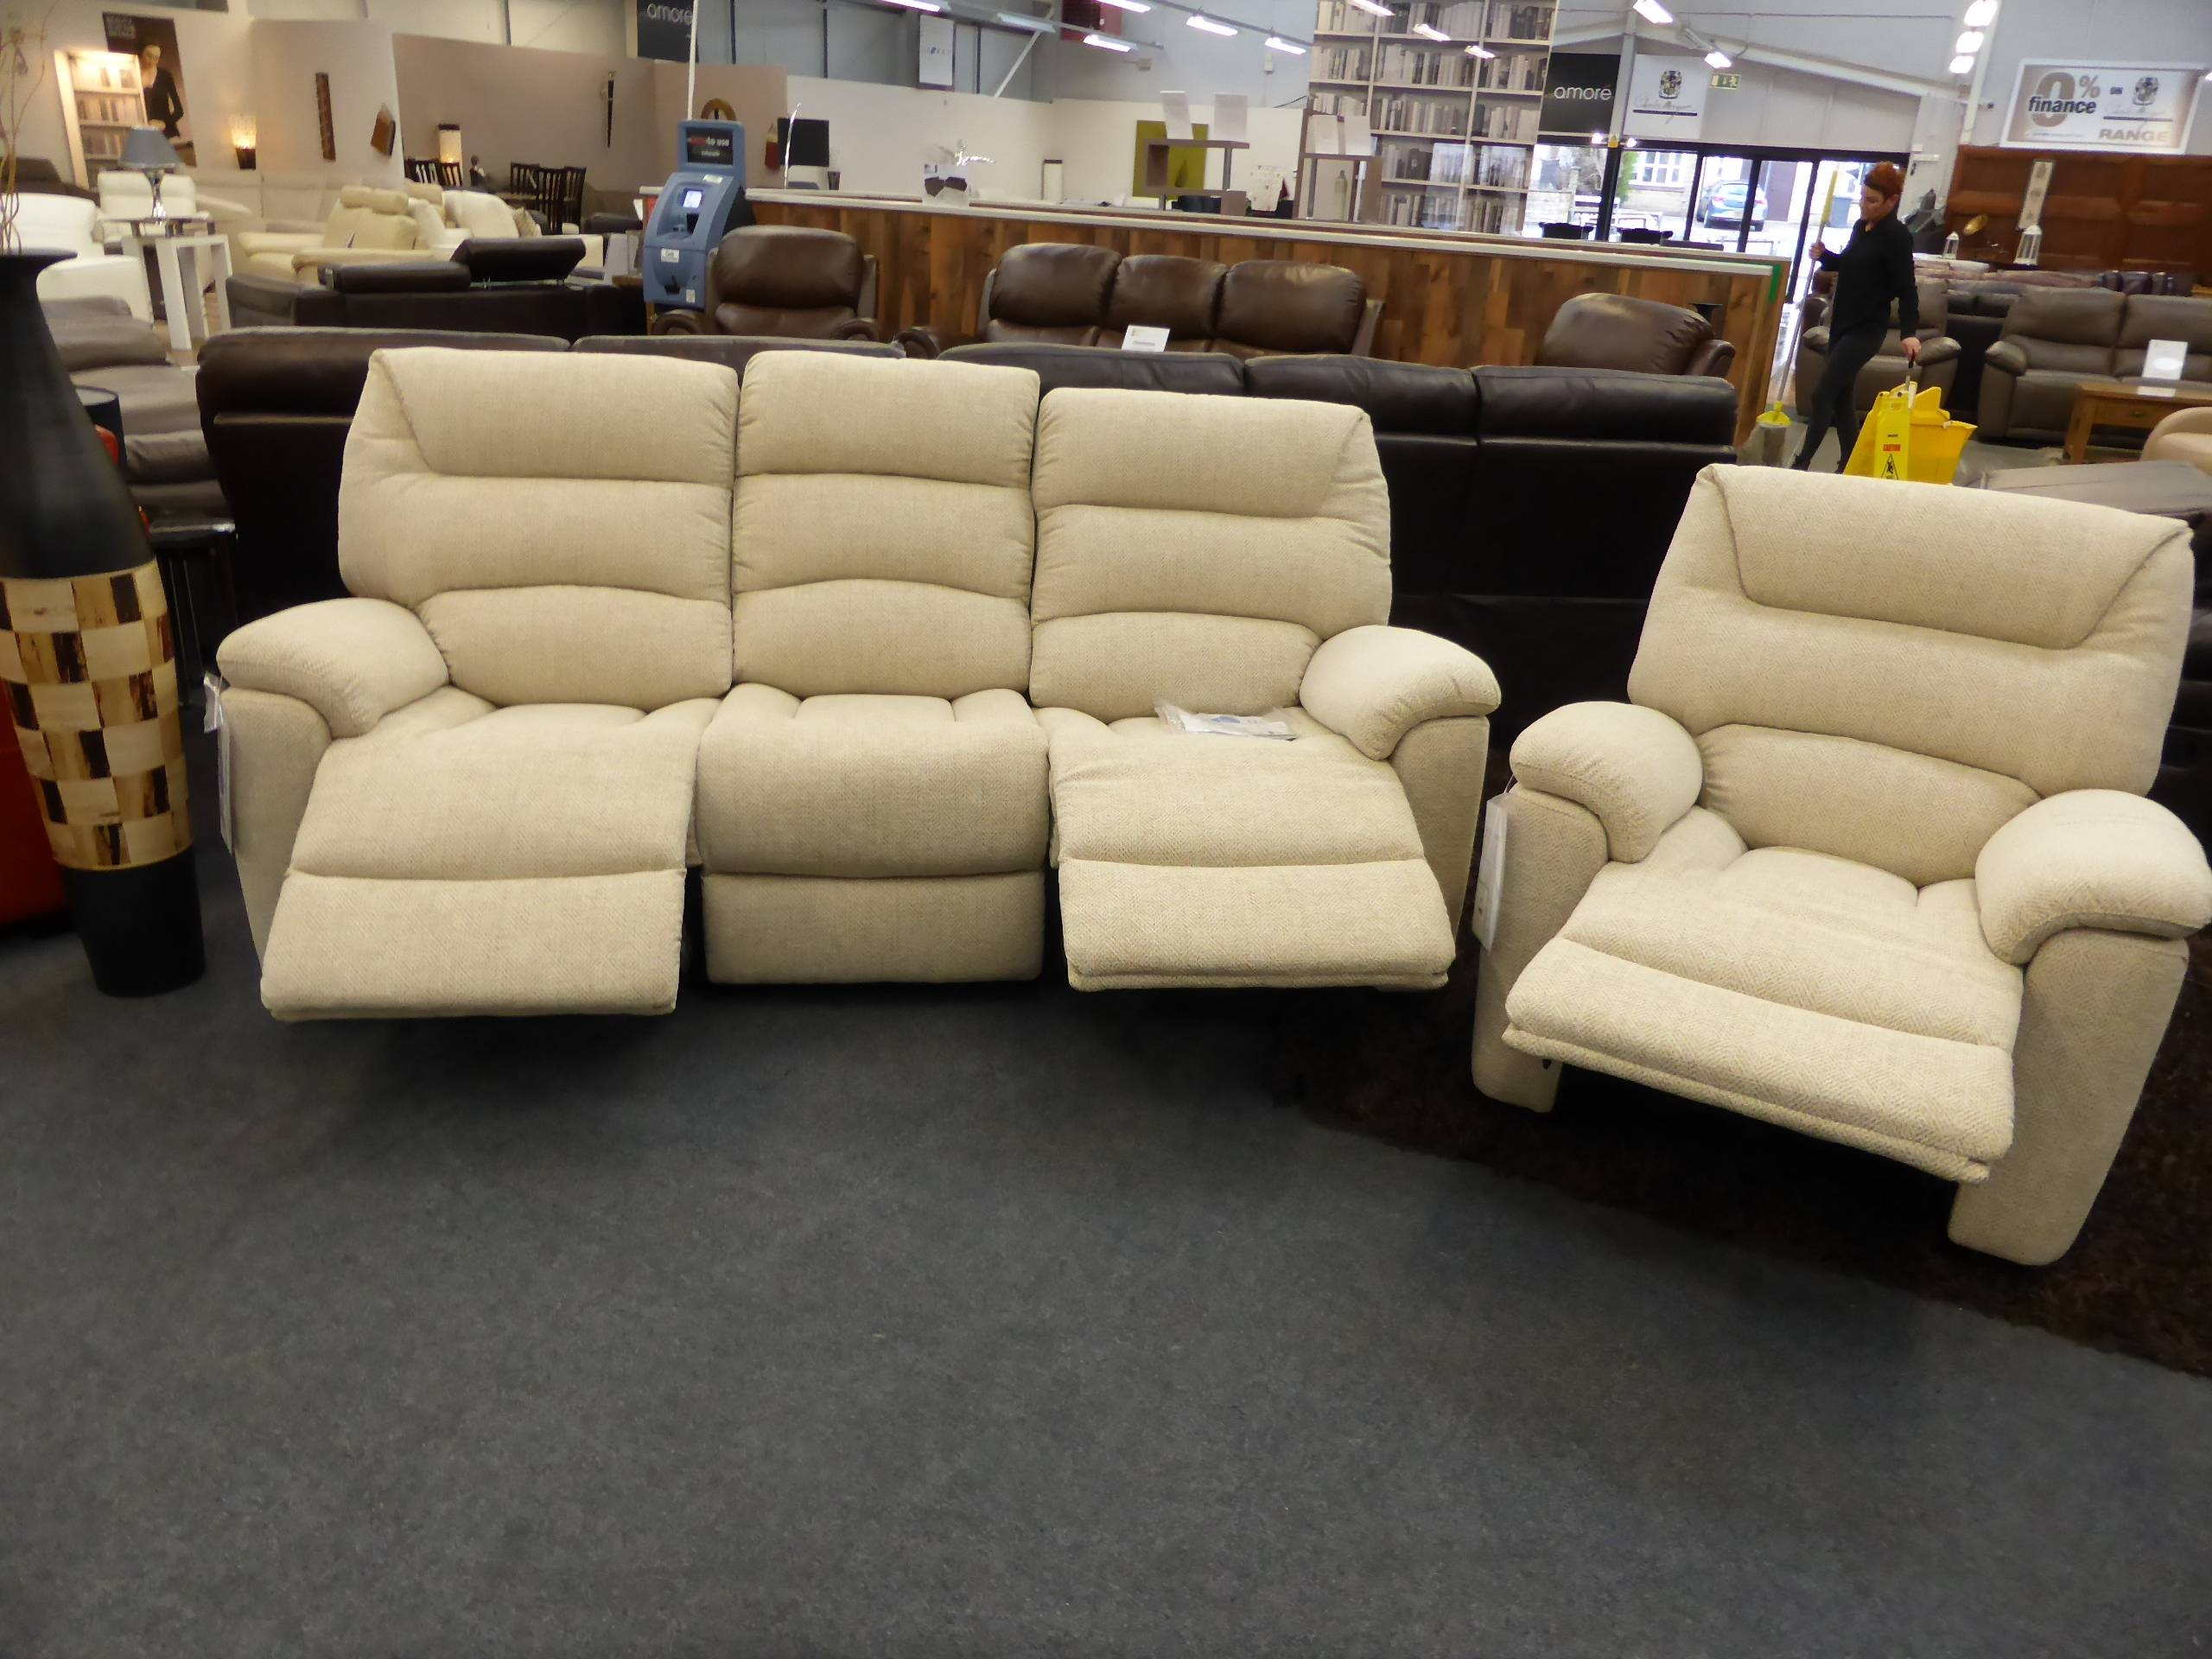 La-Z-Boy Manhattan Cream Fabric 3 & Chair Electric Recliners regarding Lazy Boy Manhattan Sofas (Image 8 of 15)